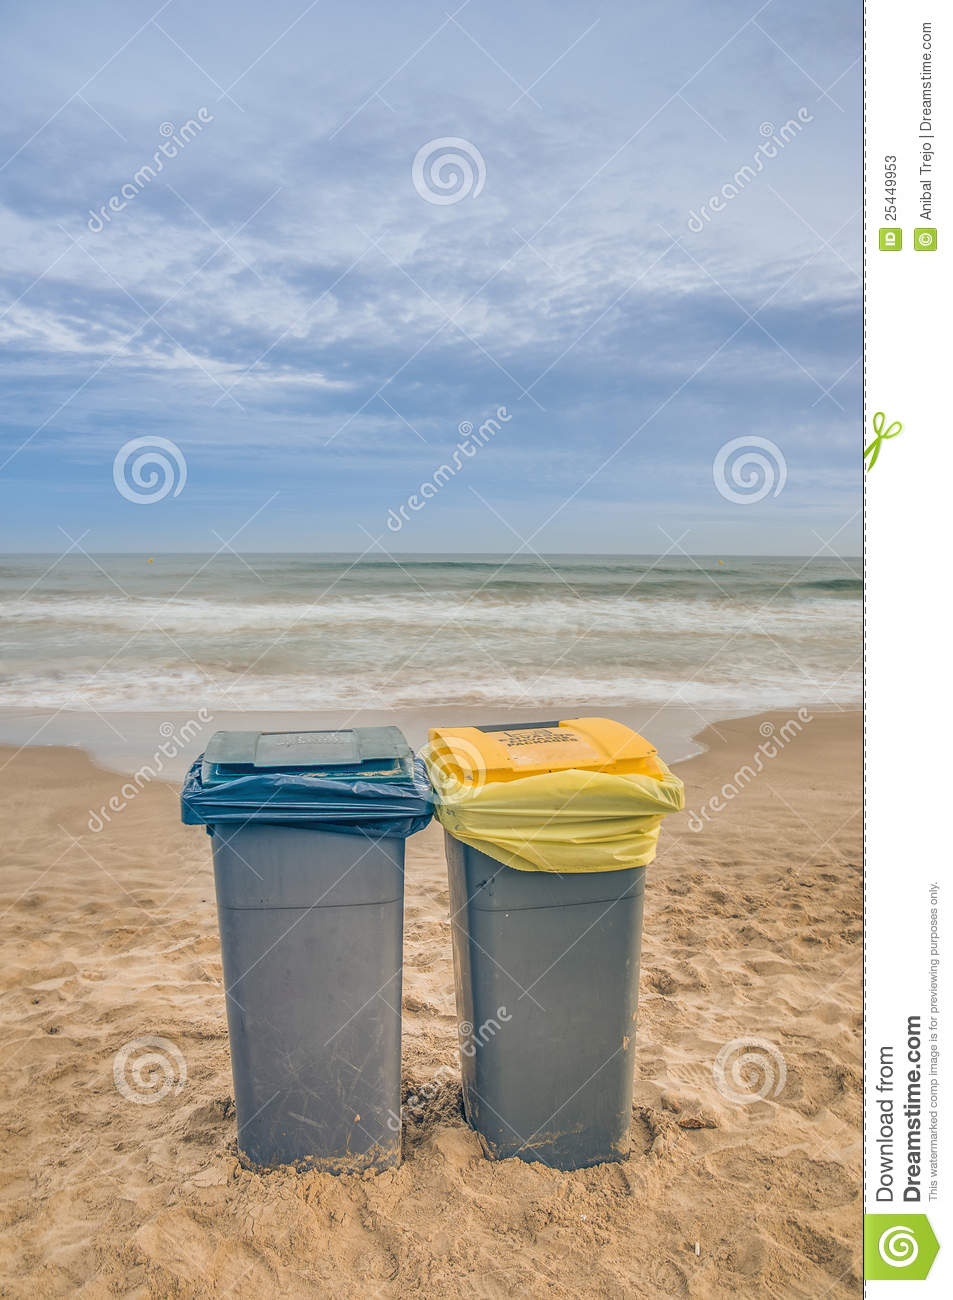 Two Trash Cans On The Beach Stock Photos Image 25449953